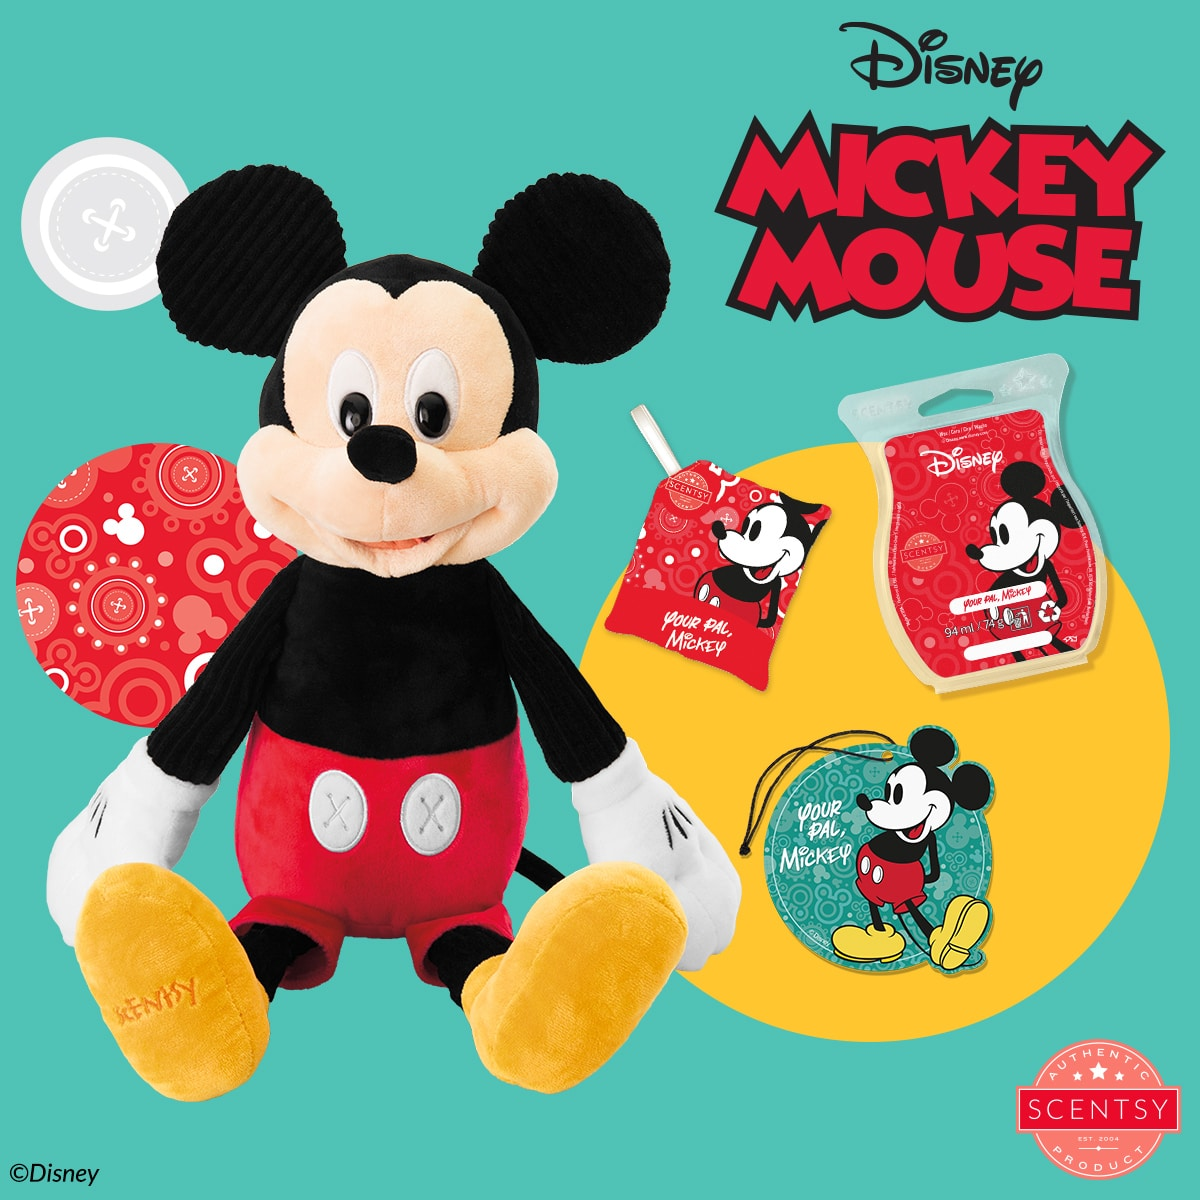 Our Mickey Mouse – Scentsy Buddy arrives 1 September as part of The Disney Collection, complete with his very own Scentsy fragrance, Your Pal, Mickey!